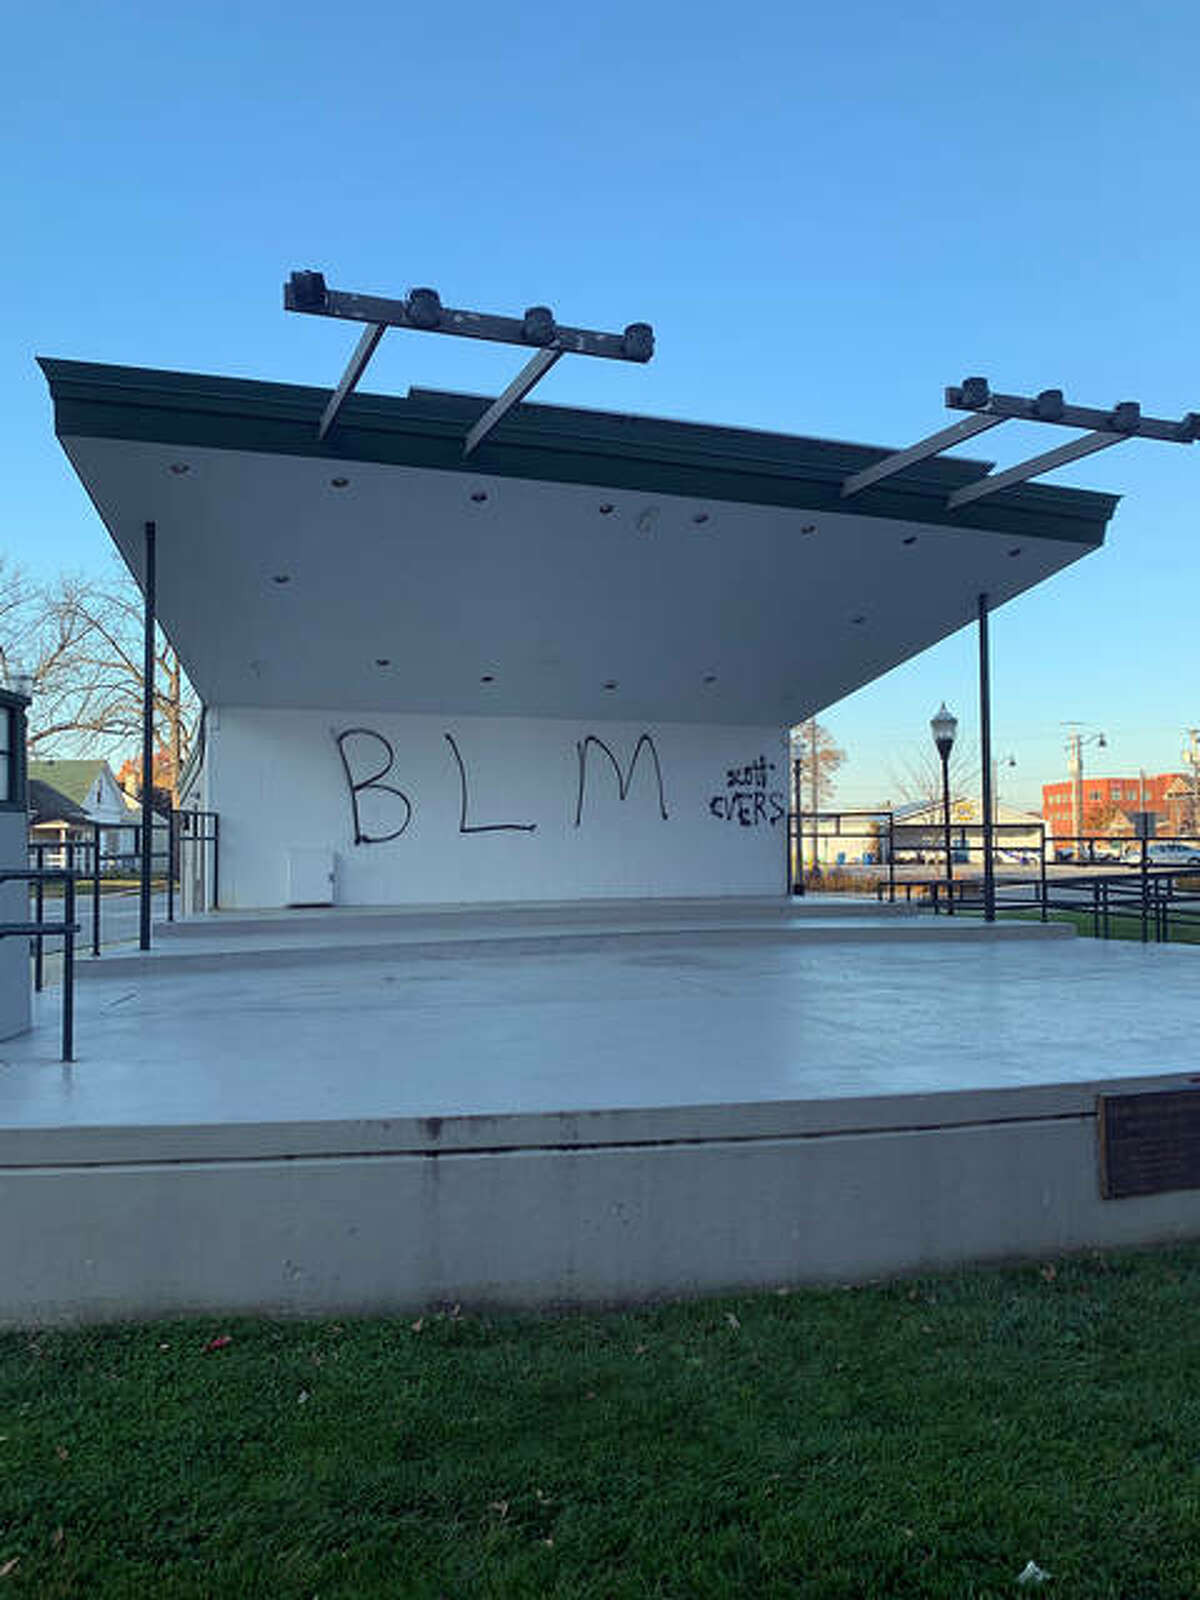 The bandstand in Edwardsville on Friday morning showed indications of graffiti.